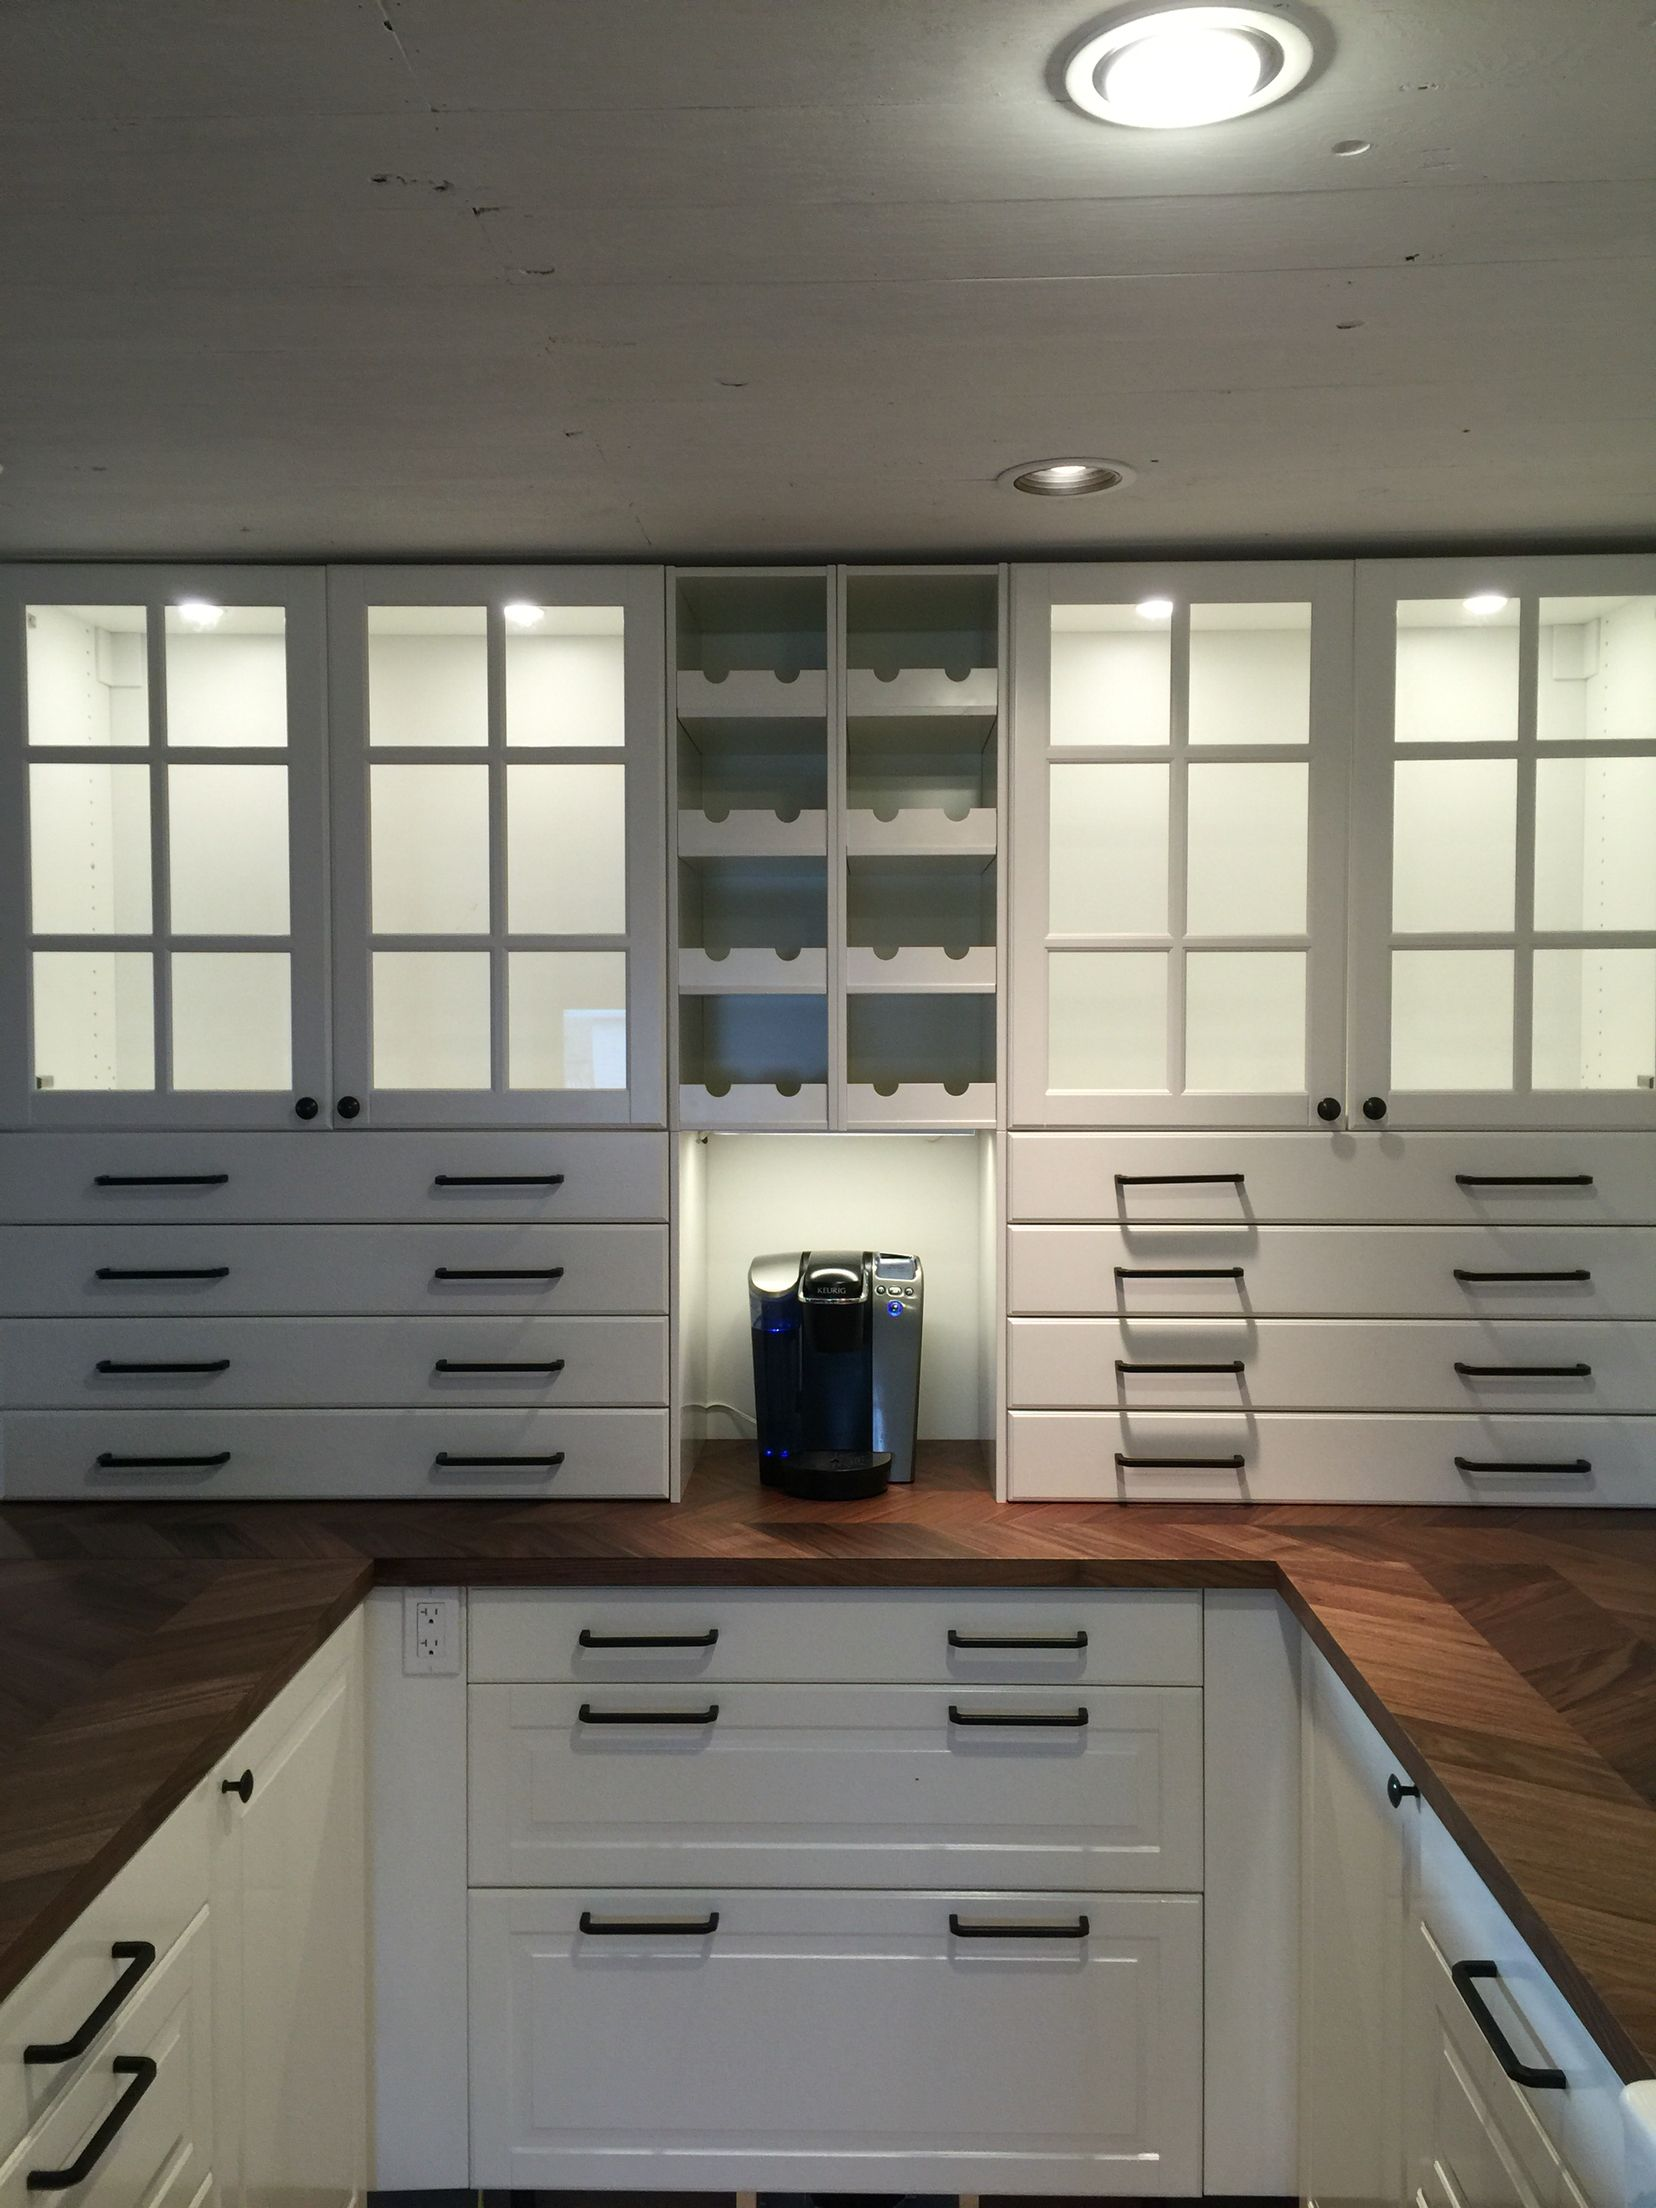 Ikea Barkaboda Countertop Modern Kitchen Cabinet Design Modern Kitchen Kitchen Cabinet Styles